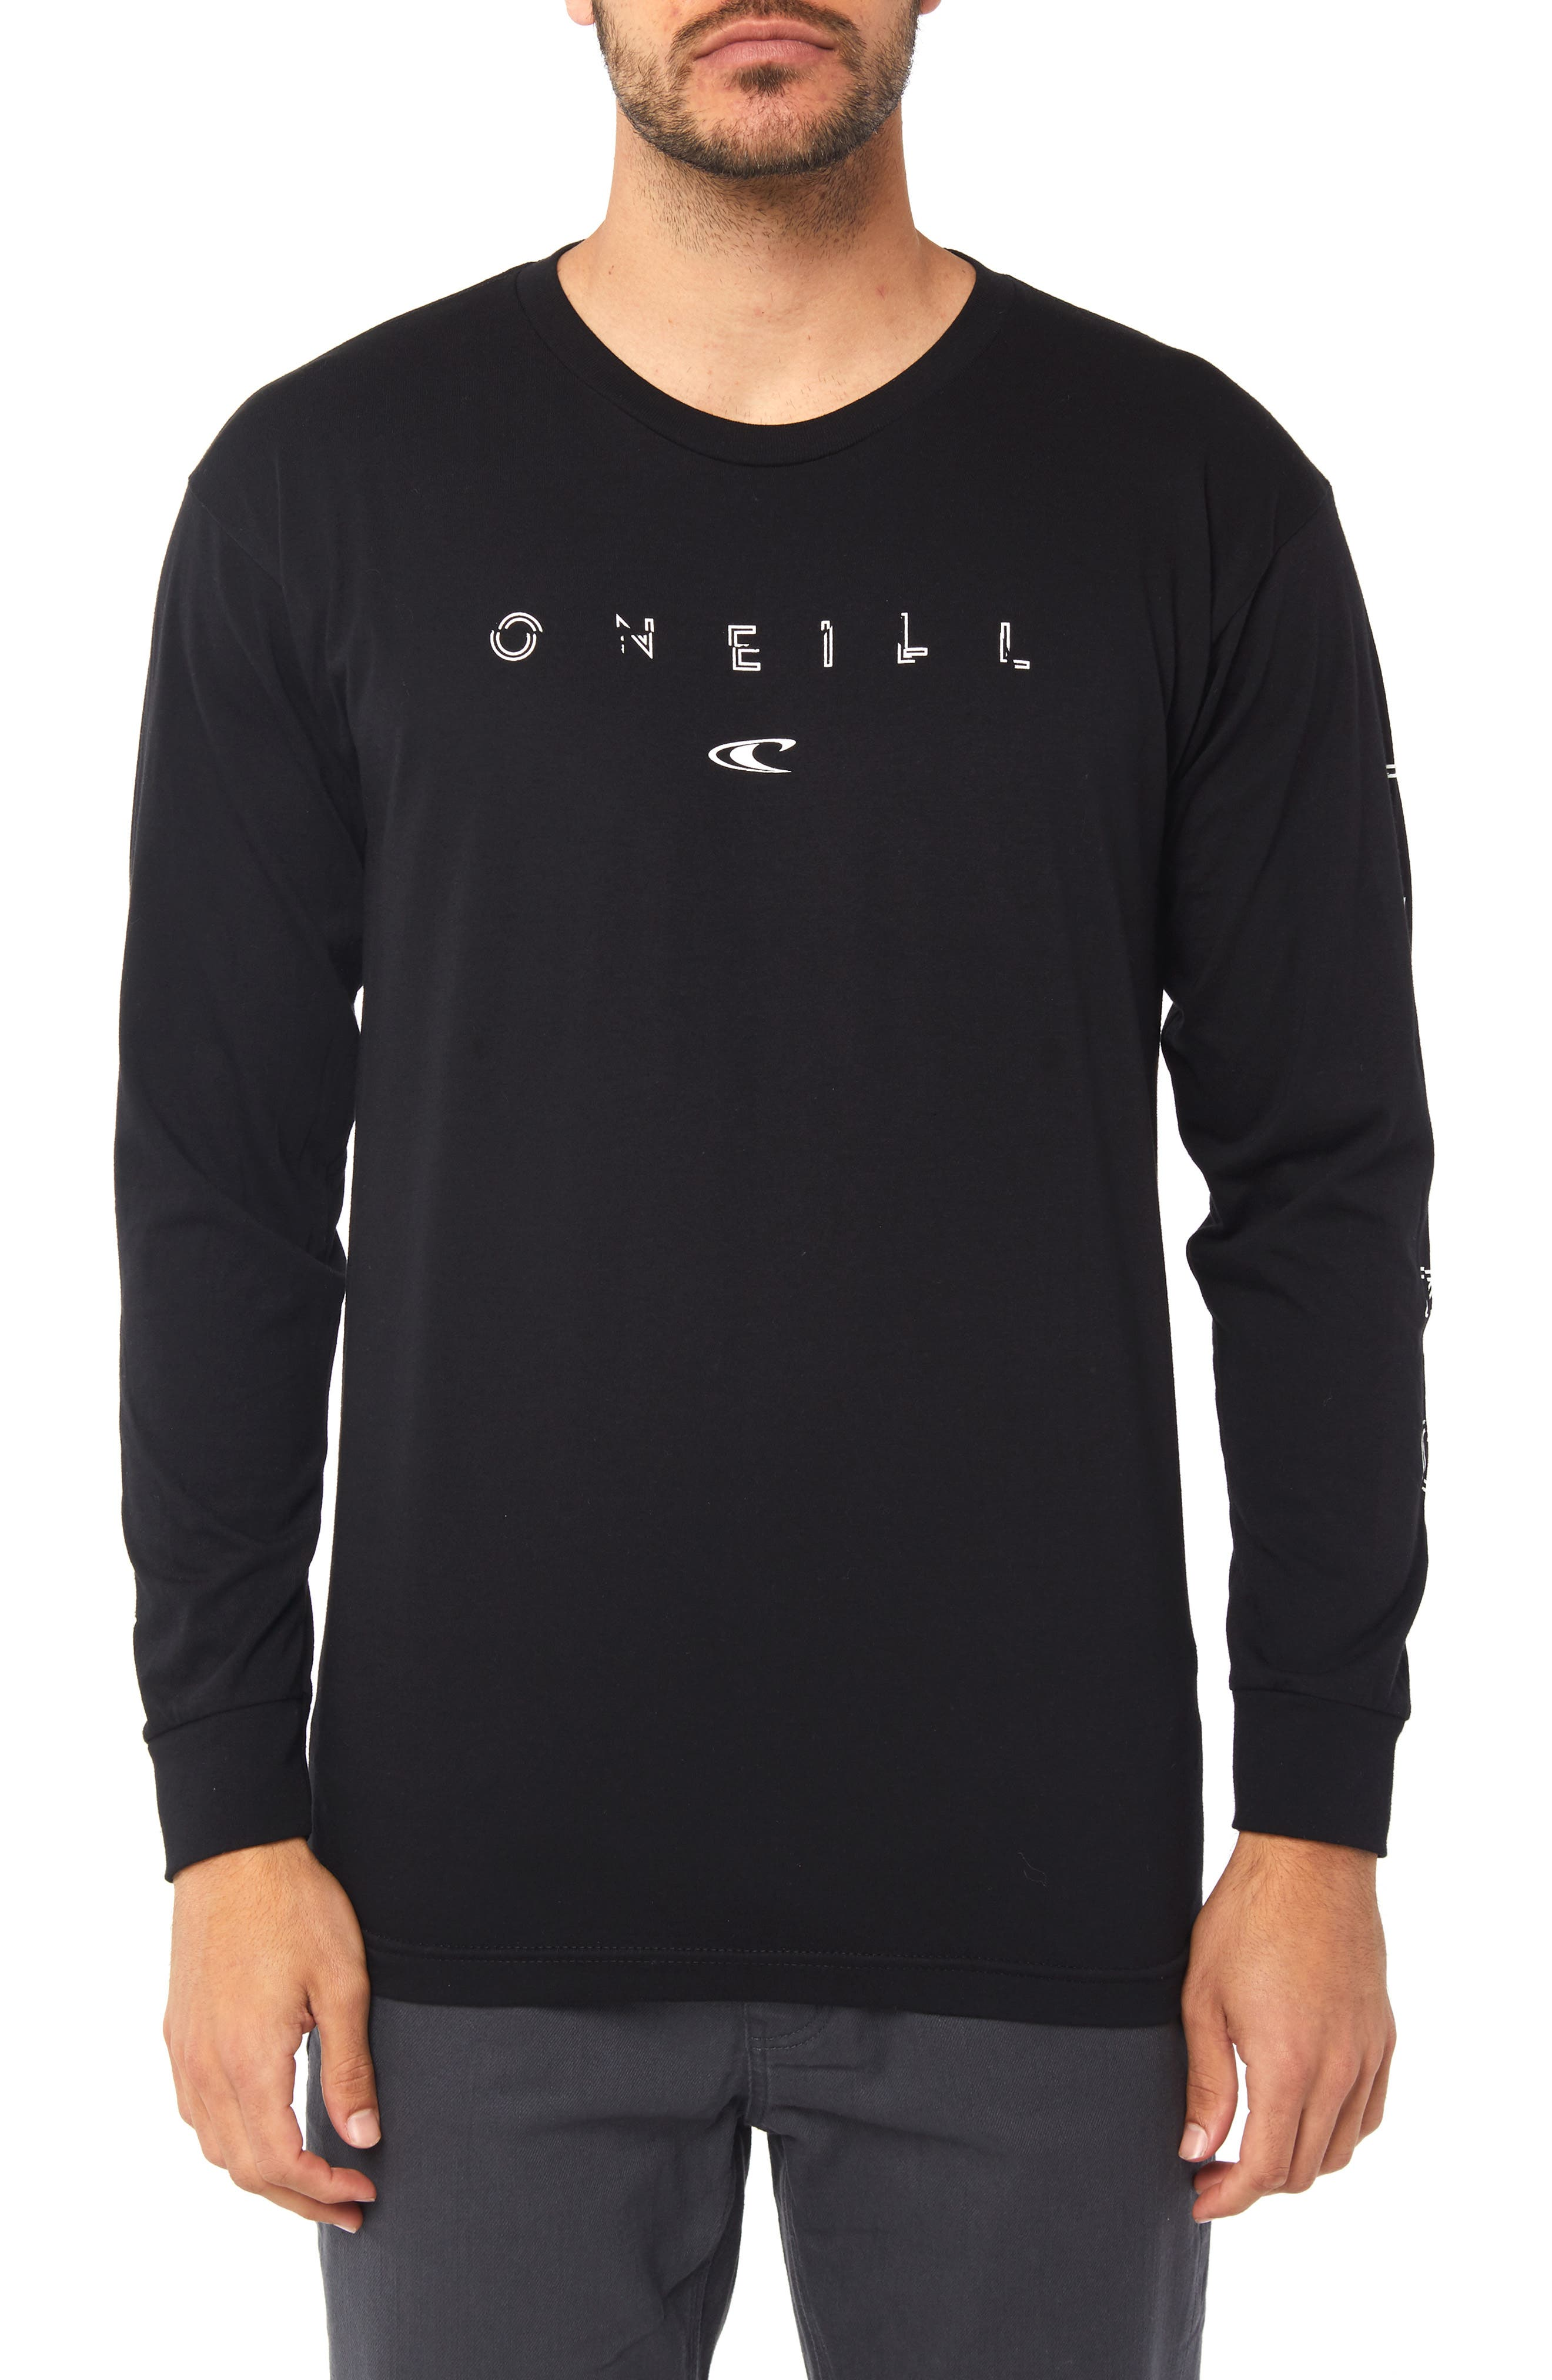 Spaced Out Graphic Long Sleeve T-Shirt,                             Main thumbnail 1, color,                             BLACK